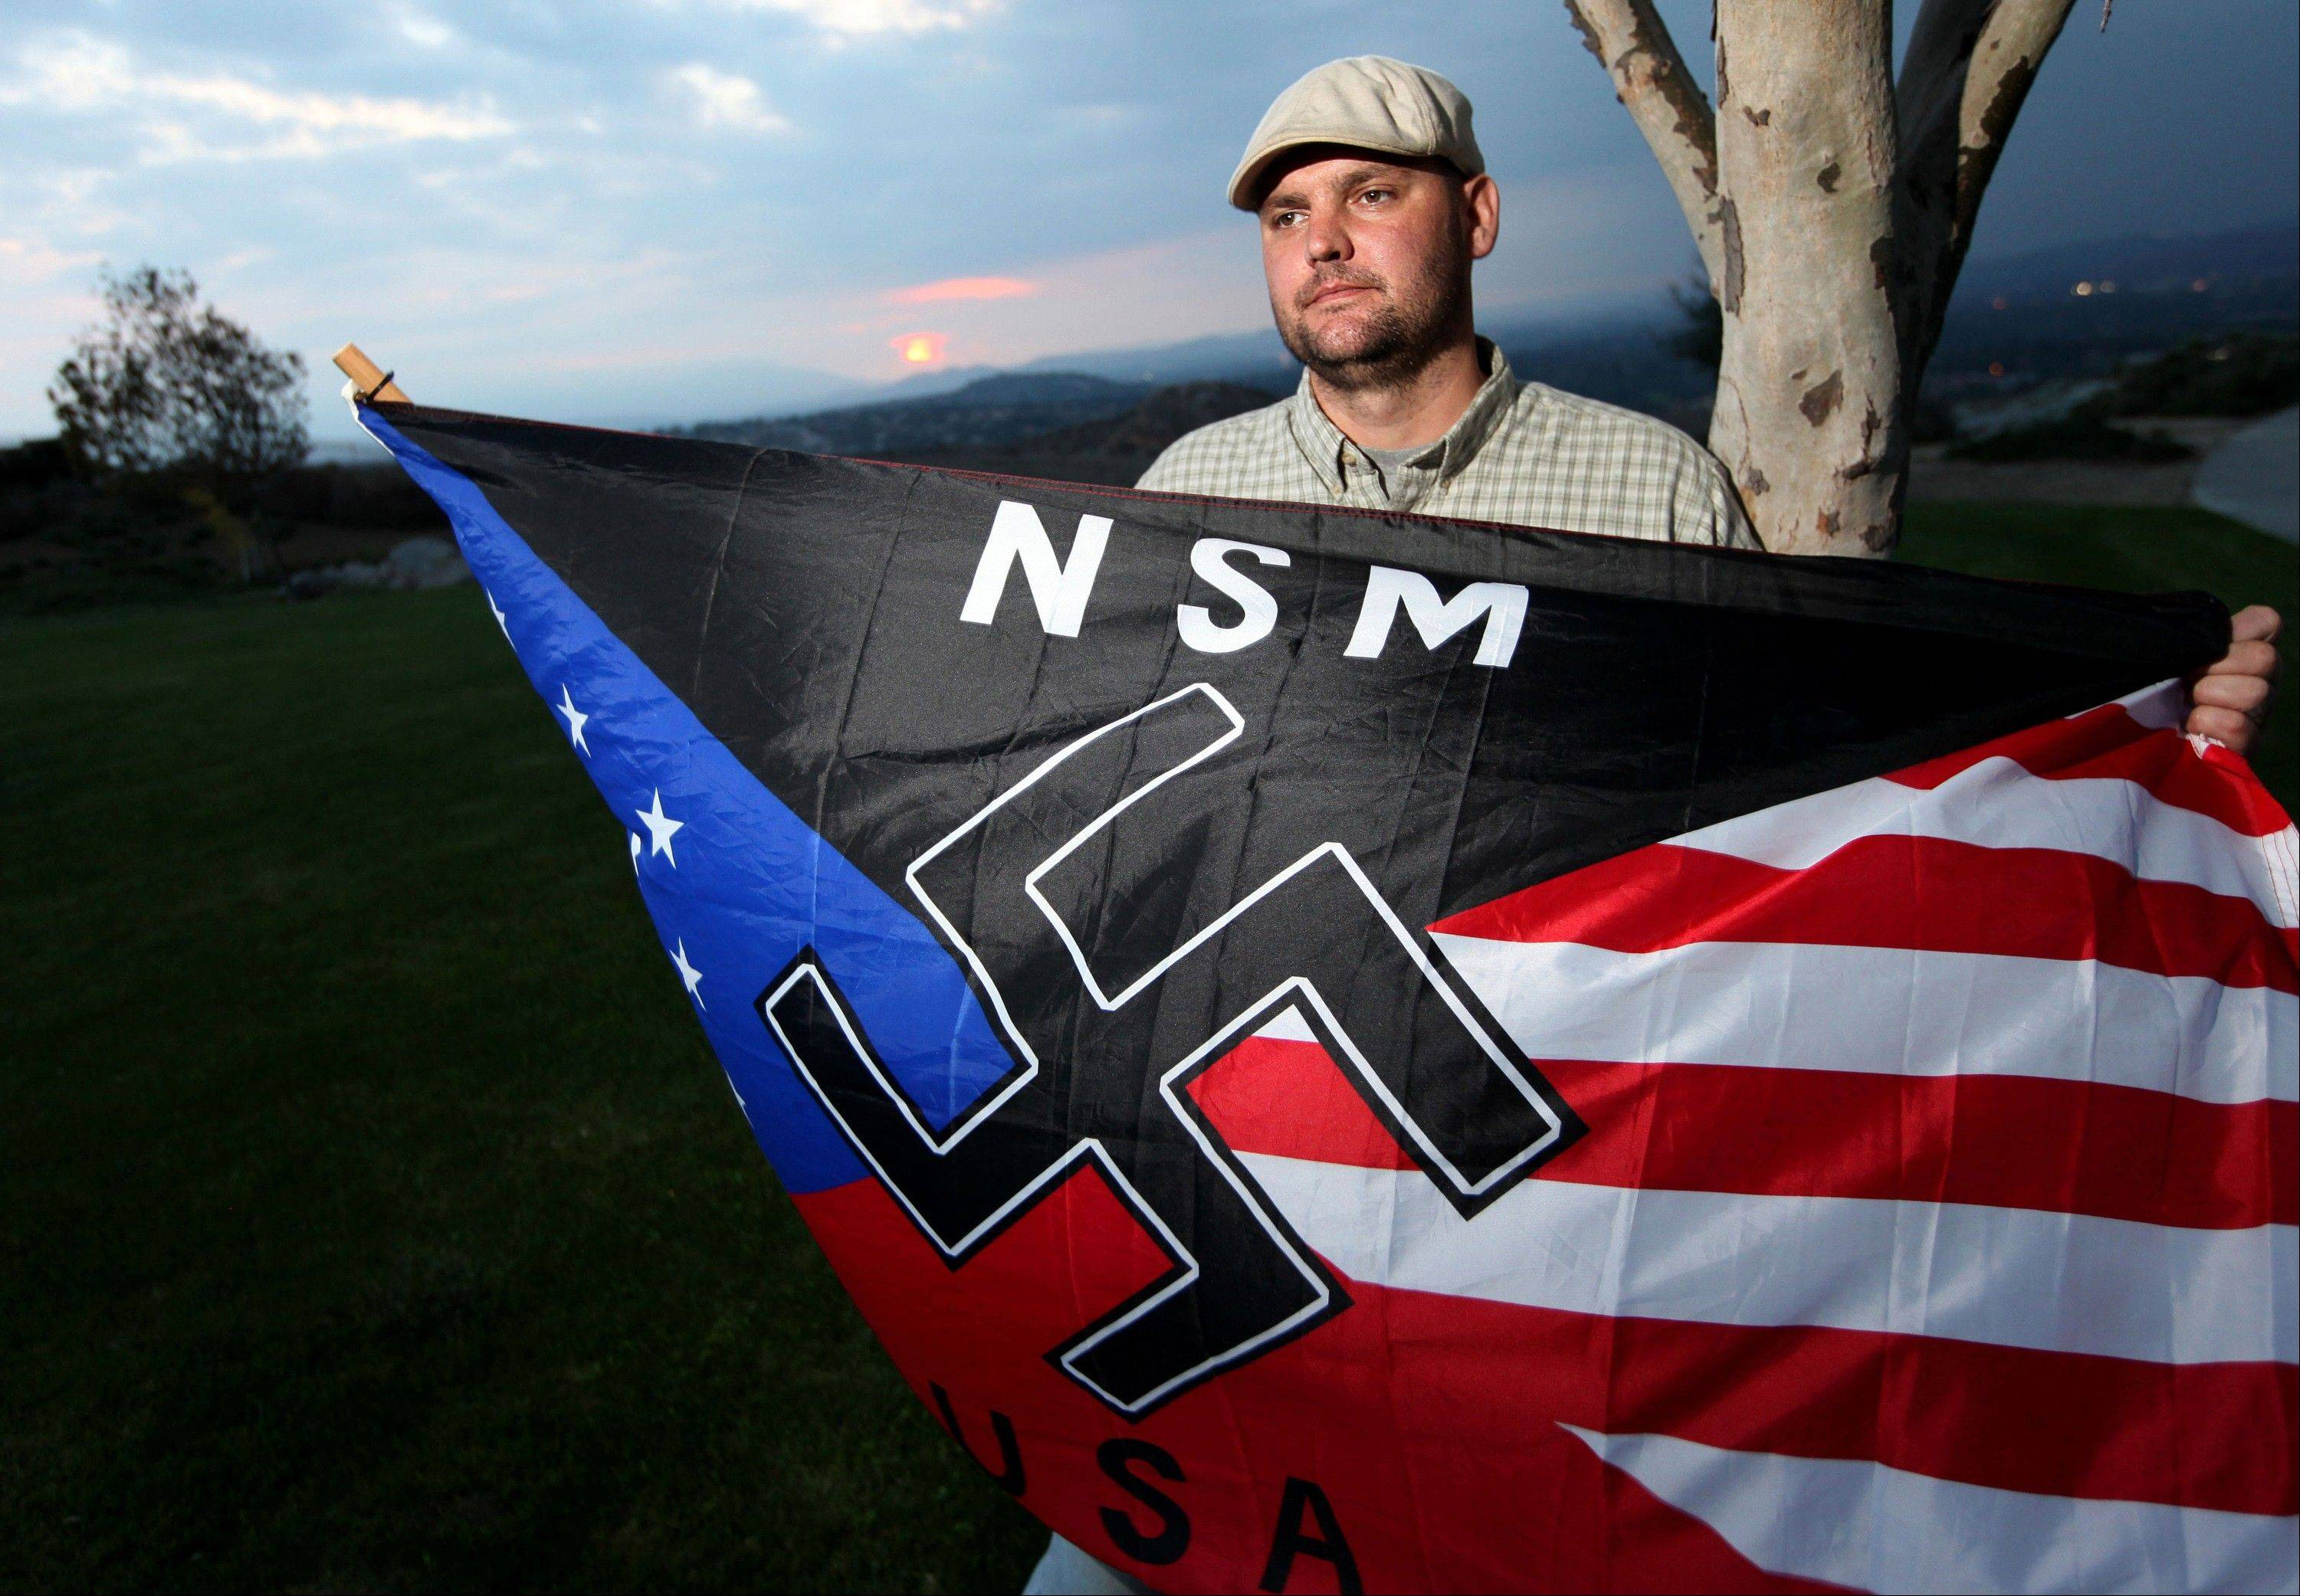 Jeff Hall, who was killed by his son, holds a Neo Nazi flag while standing at Sycamore Highlands Park near his home in Riverside, Calif. On Friday Oct. 25, 2013 a judge will to determine where Hall's son will spend his teens and, possibly, his early adult years. The judge hearing the case in Riverside County must decide not how to punish a child for second-degree murder, but how to rehabilitate someone who grew up in an abusive home.